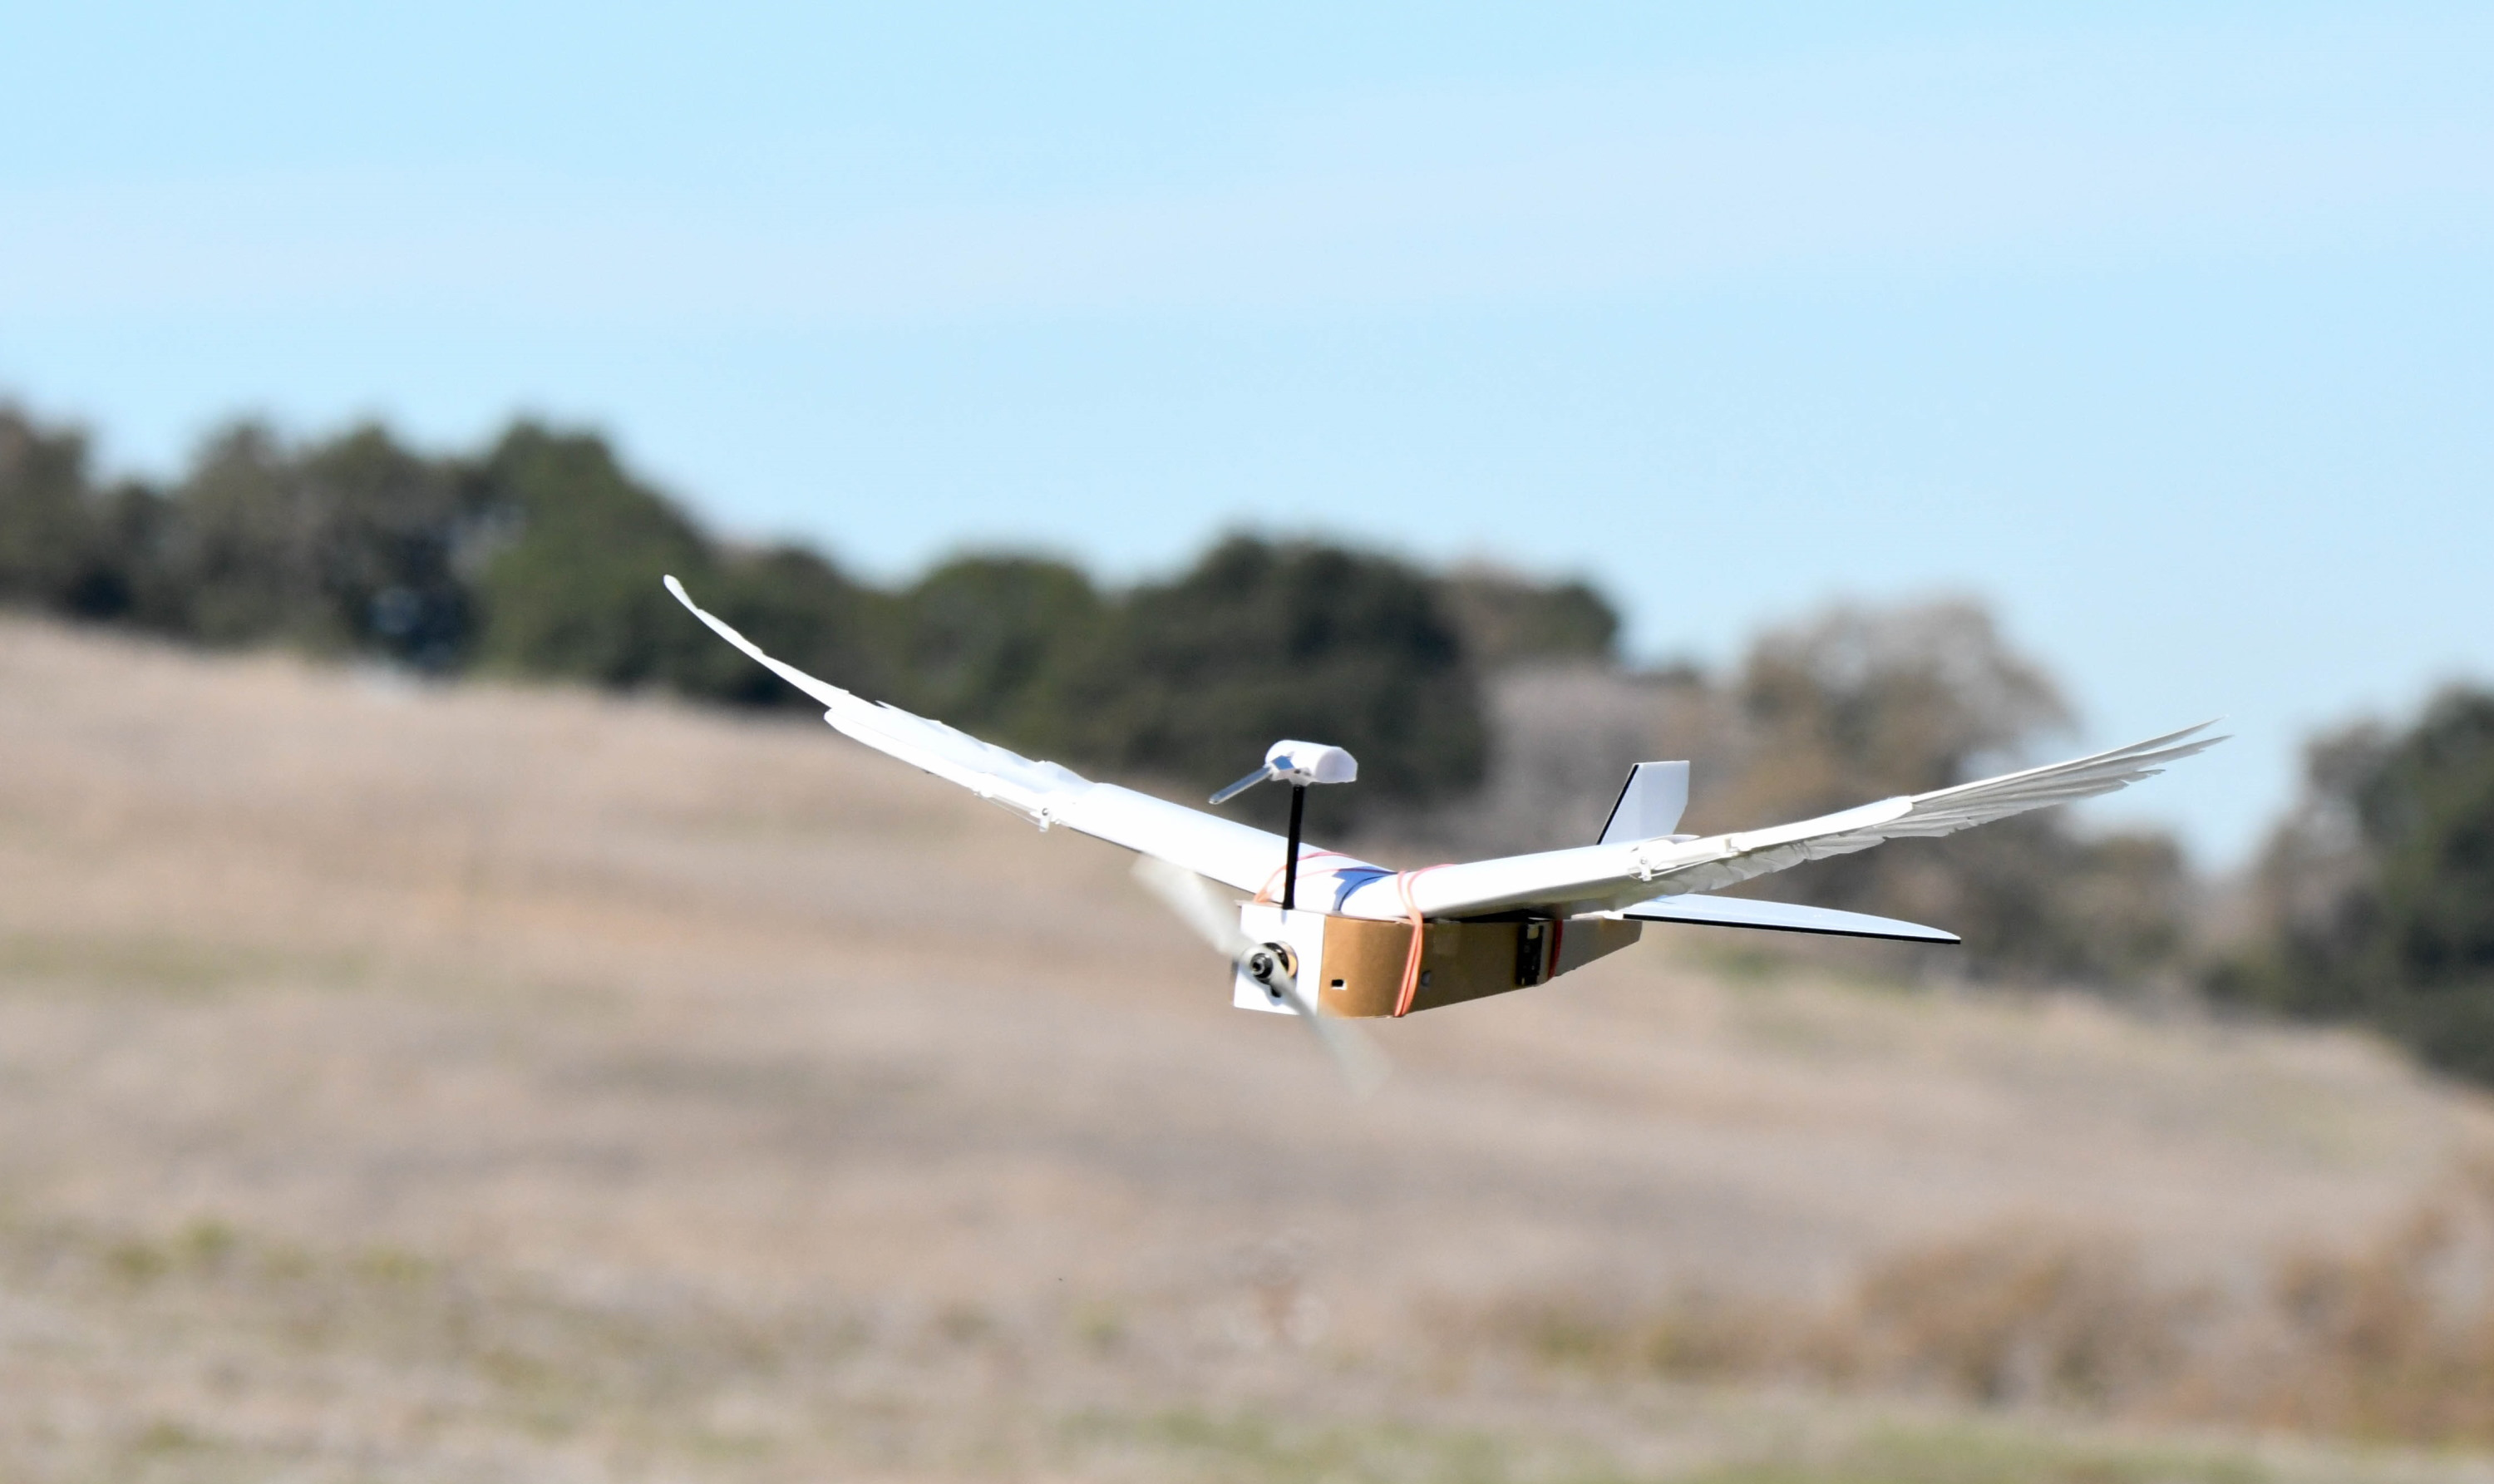 The Stanford researchers' PigeonBot provides insight into the mechanics of bird wings